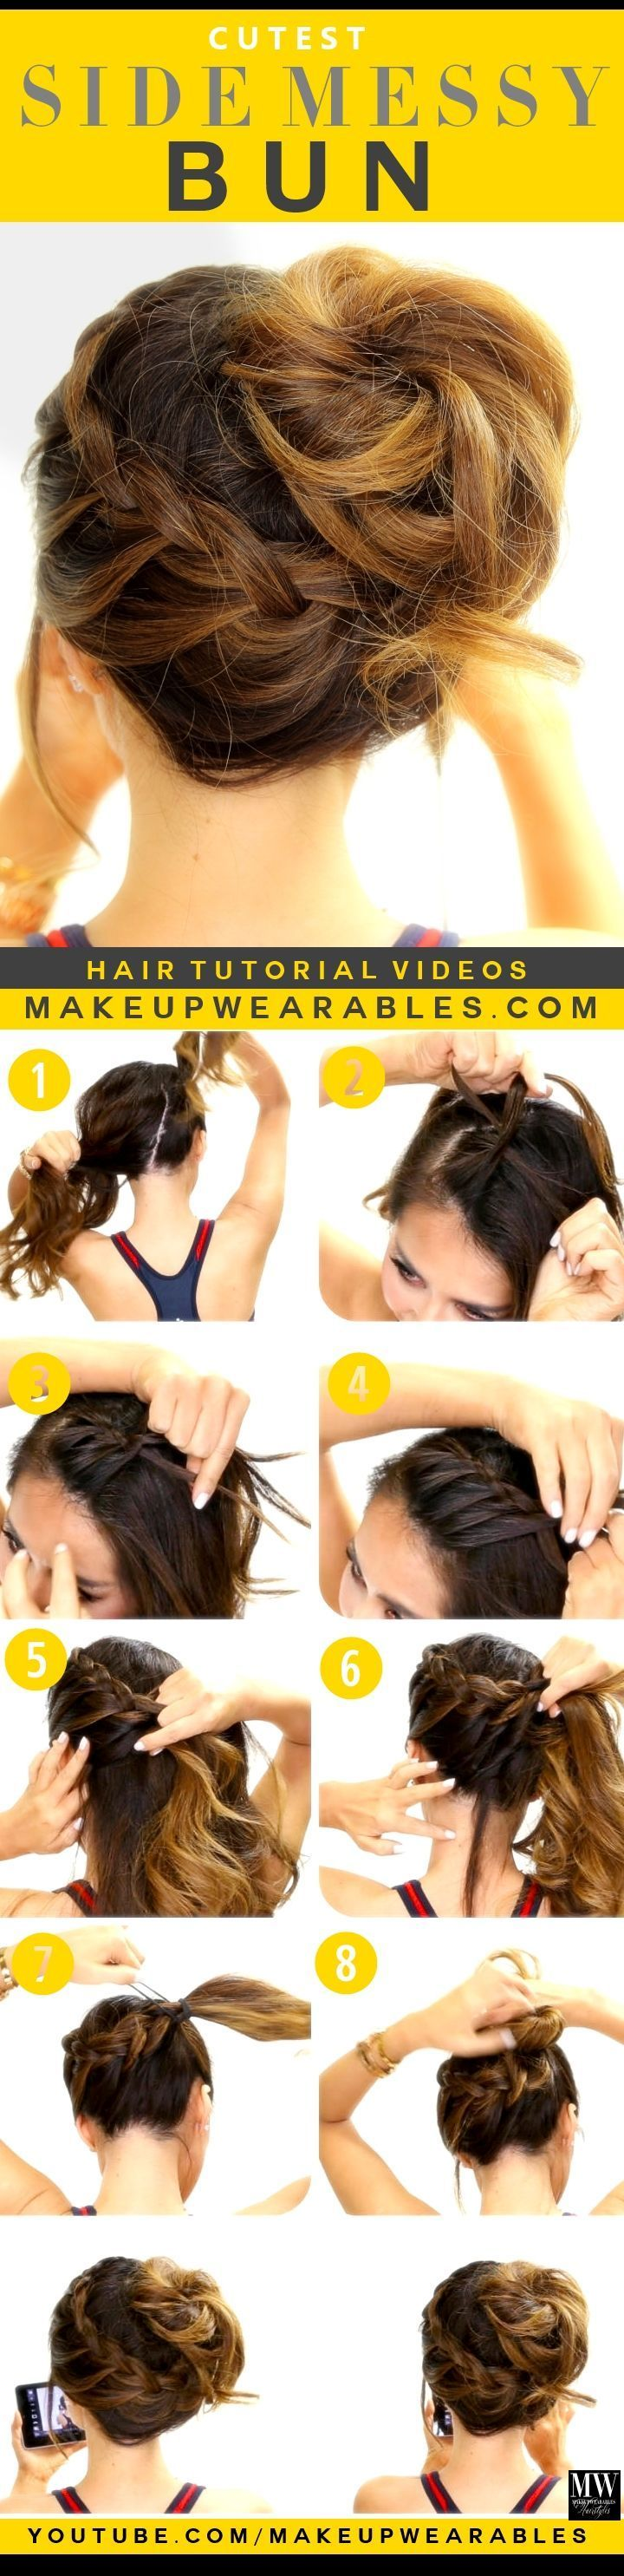 Pin by sasha hannaford on beauty pinterest hair style fast